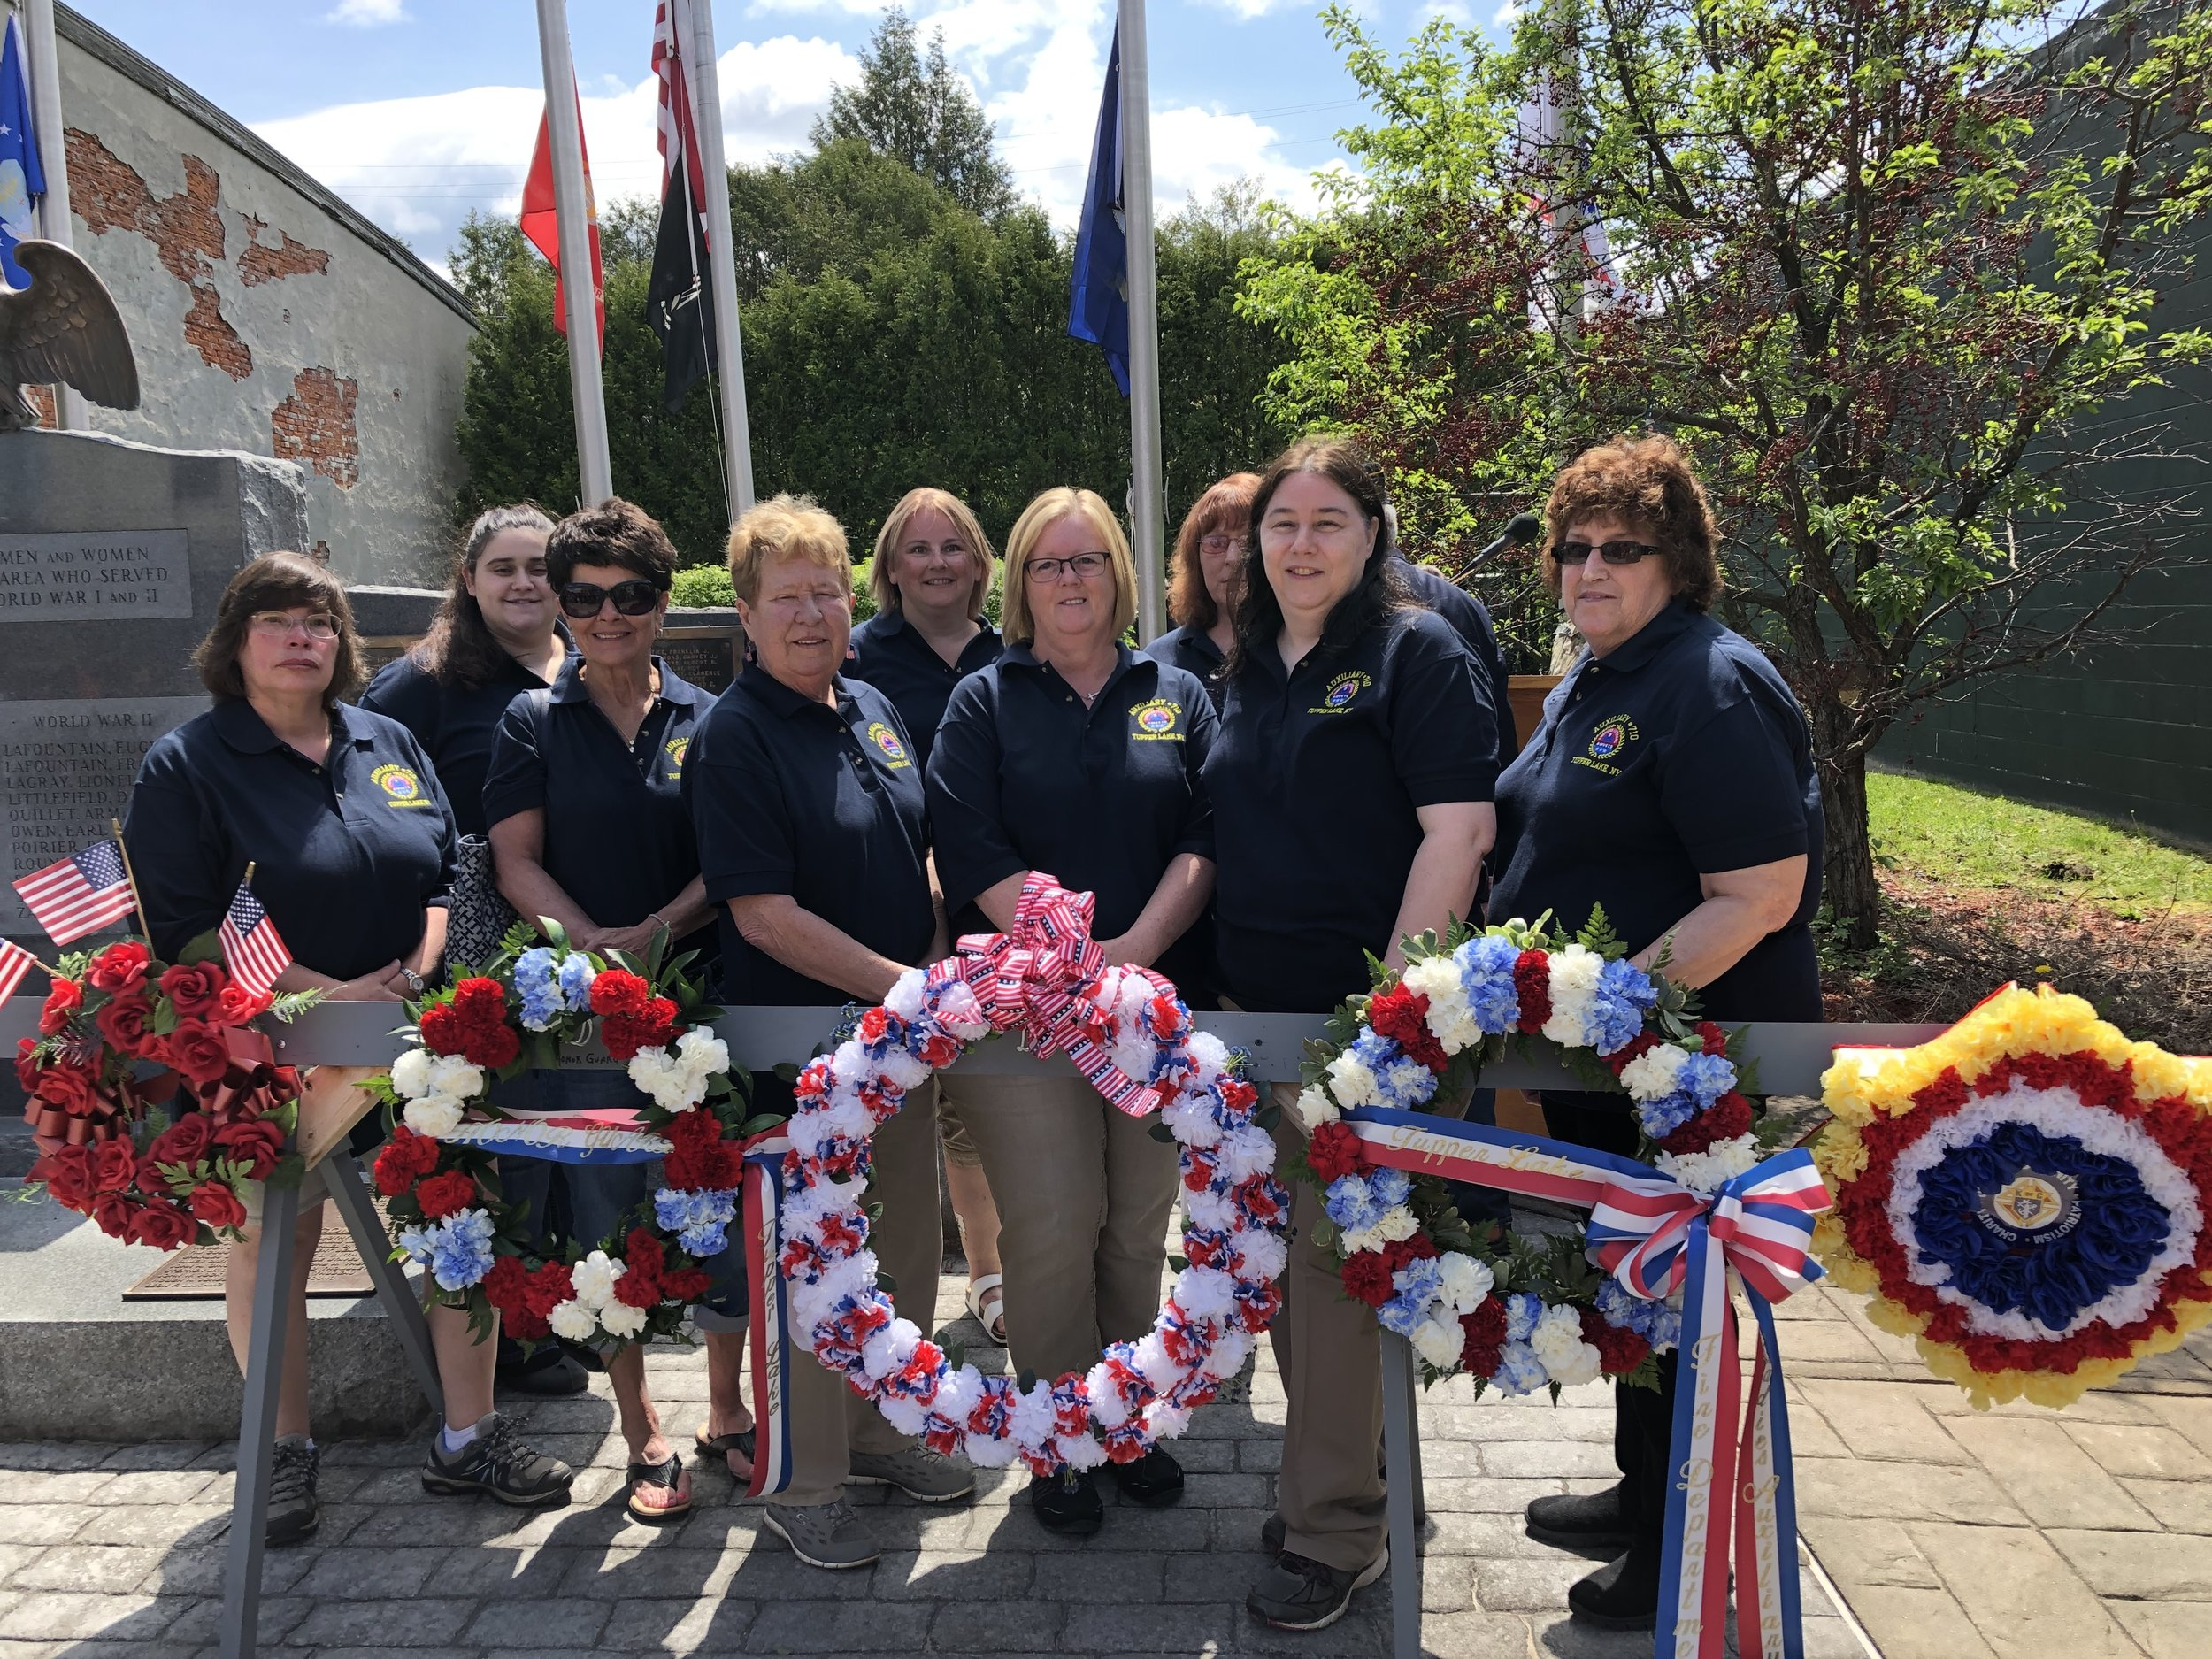 Making their first public appearance in their new uniforms at Monday's Memorial Day ceremonies were members of the Amvets Post 710 Ladies Auxiliary. From left behind their wreath were Cindy Hoyt, Celeste Amell, Fran Smith, Diane Buntich, Vicki Dukette, Lisa Reed, Lorri Neumann, Phyllis Larabie and Patty McMahon.